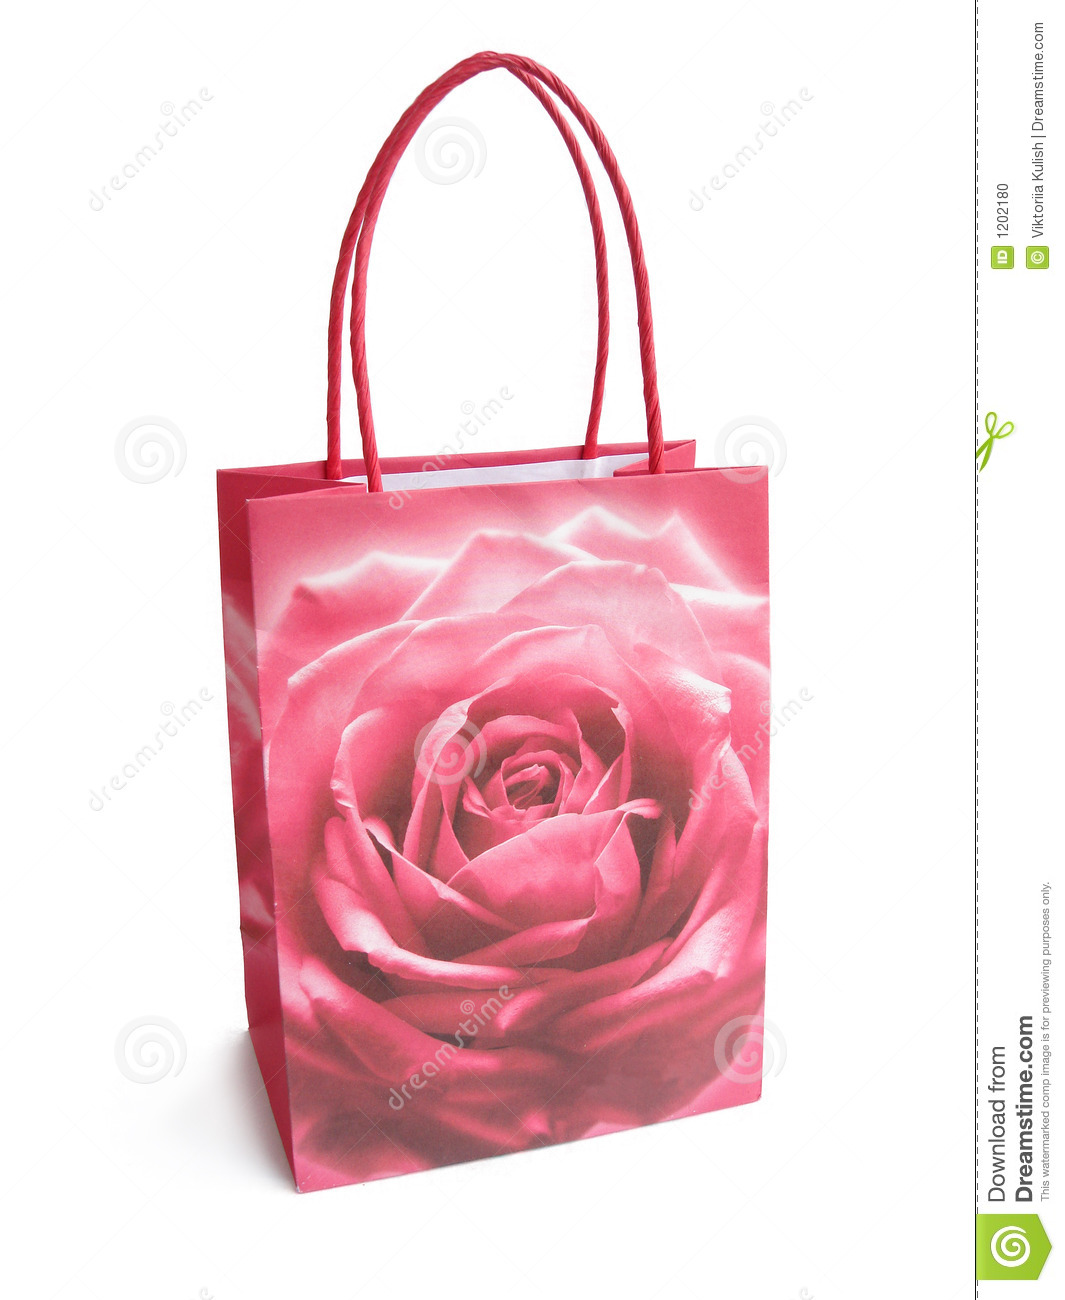 pink brightly colored shopping bag isolated over a white background